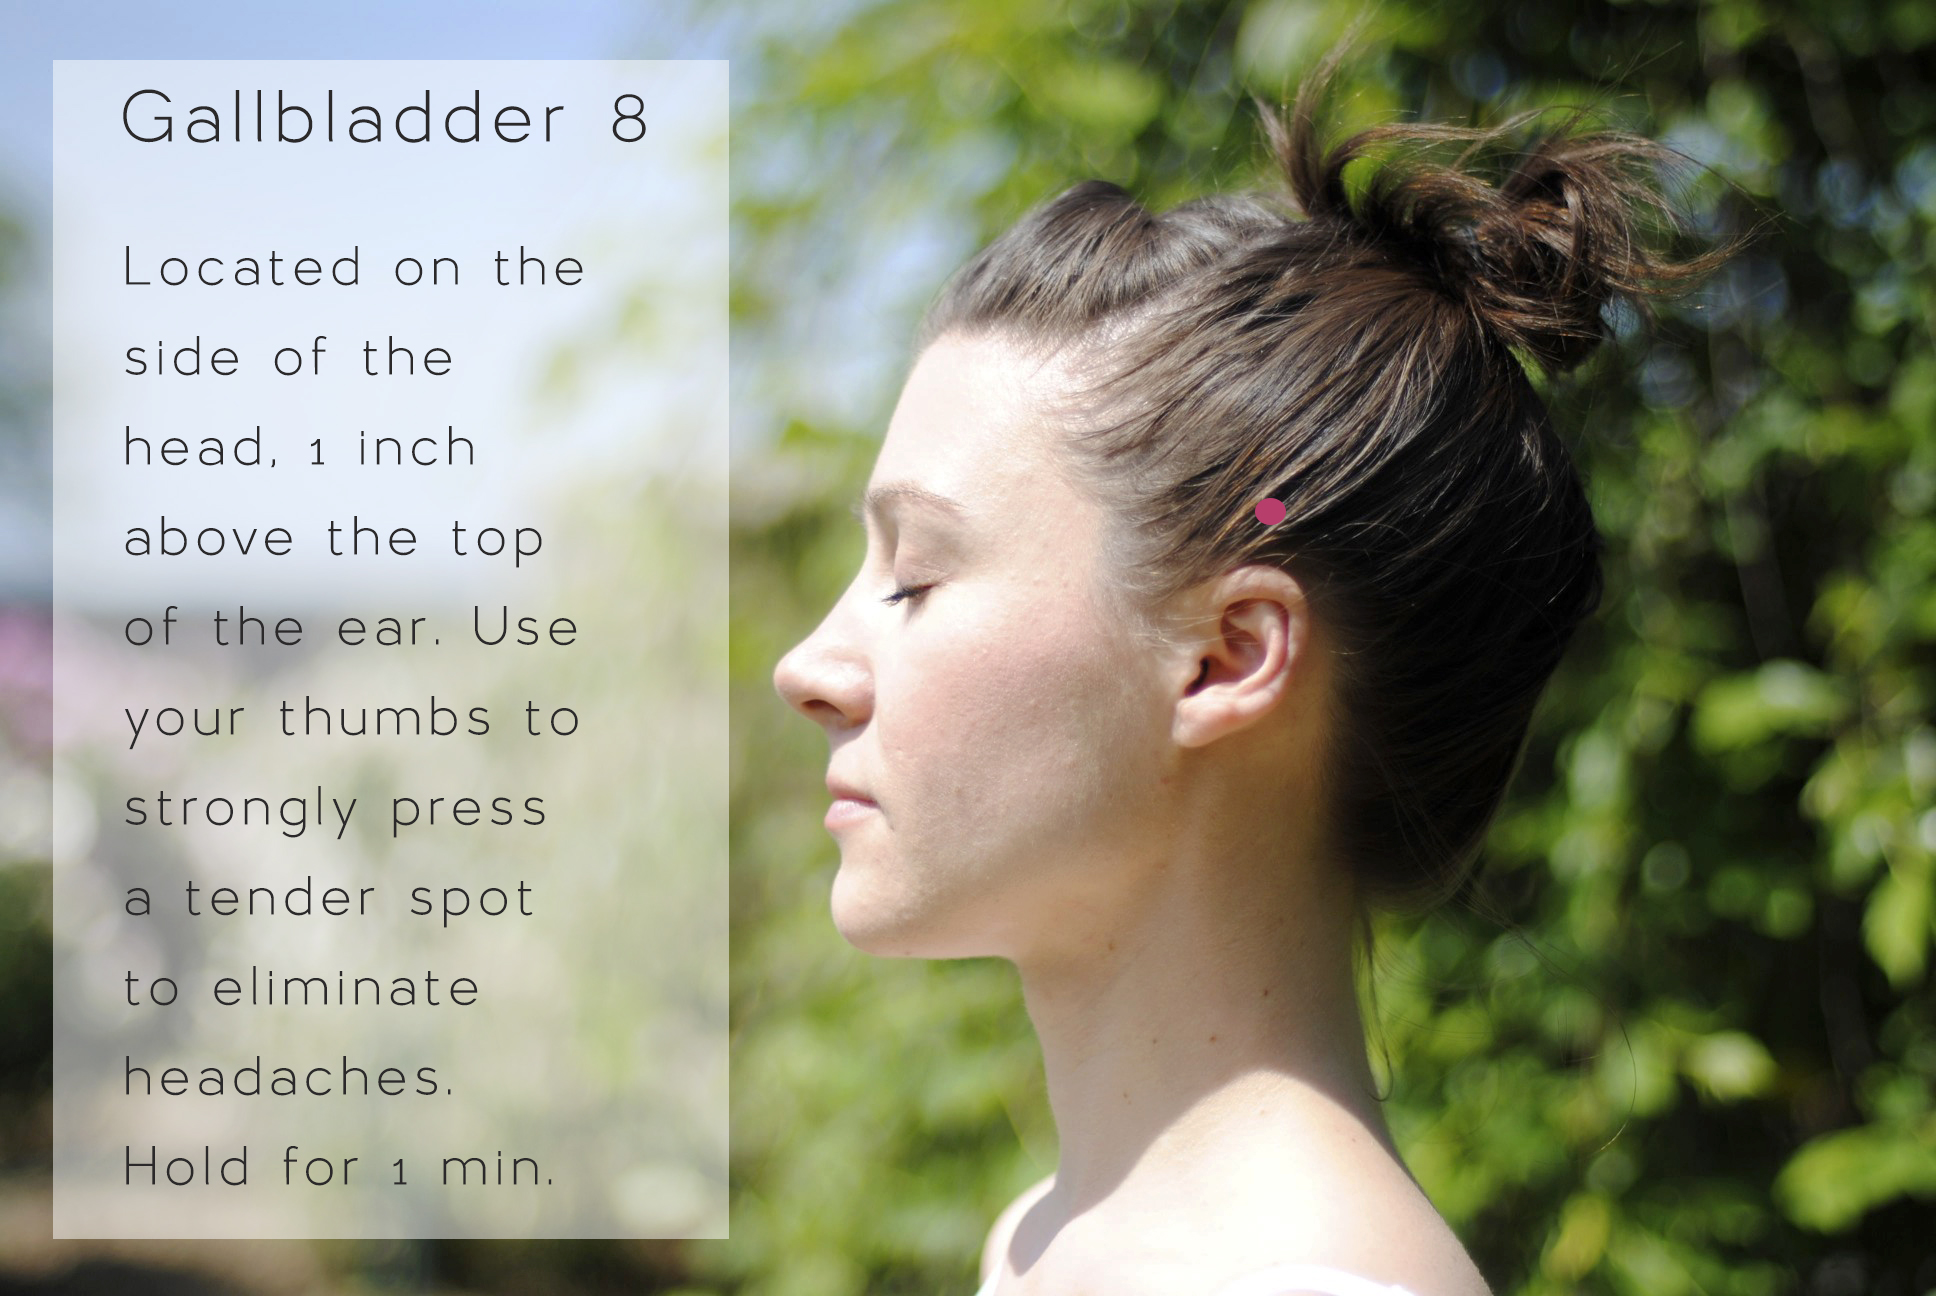 acupuncture for headaches